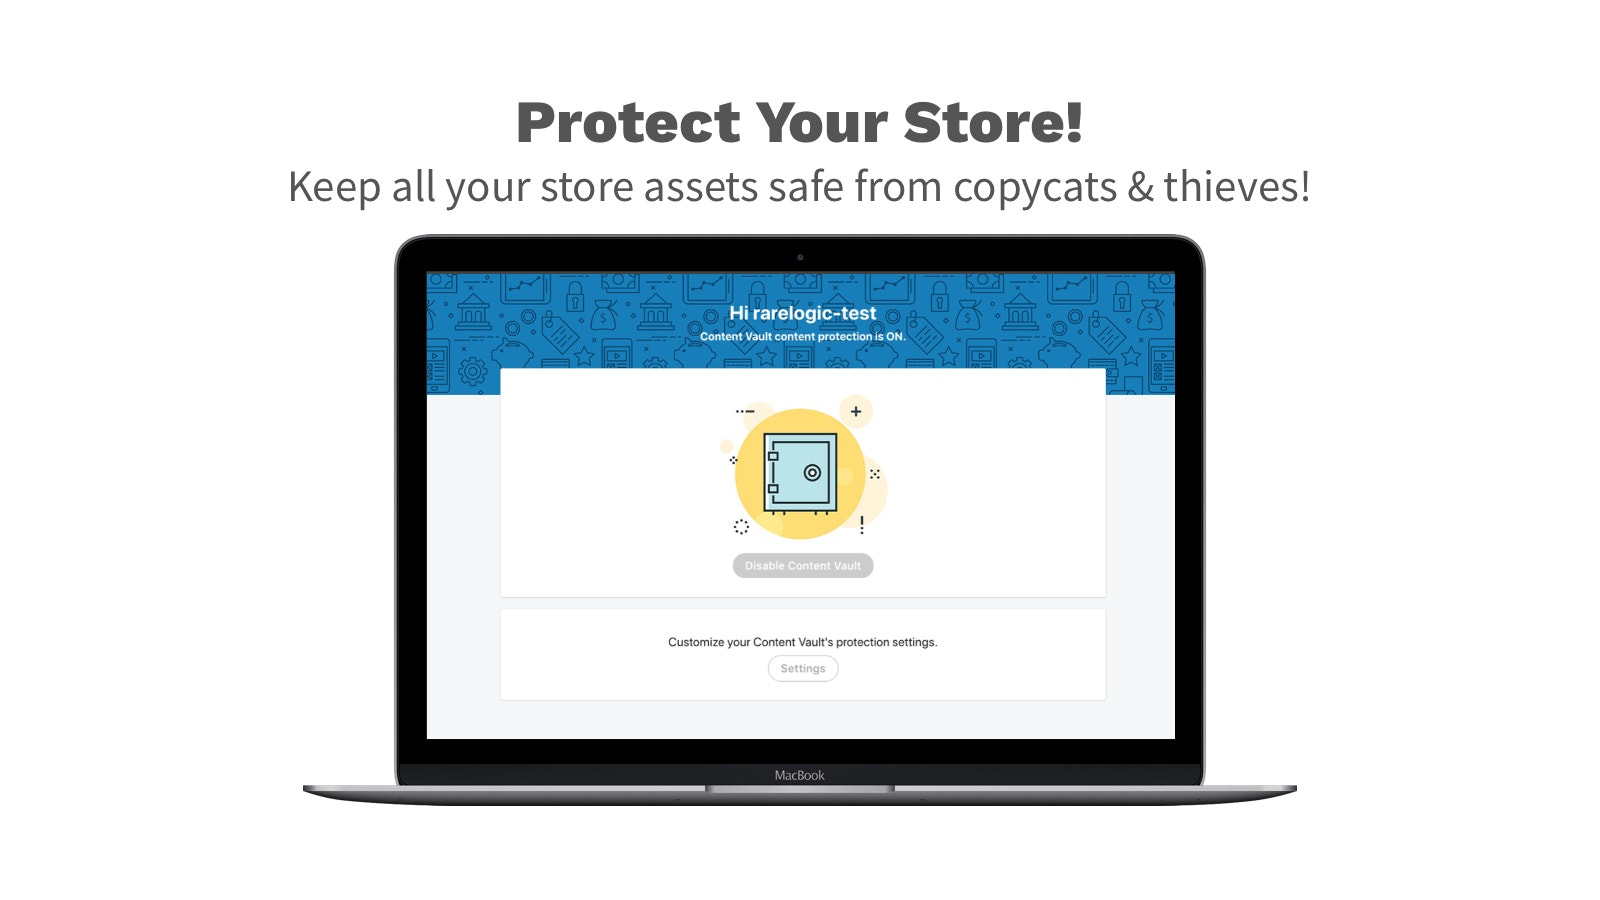 Protect Your Store - keep images safe from content theives